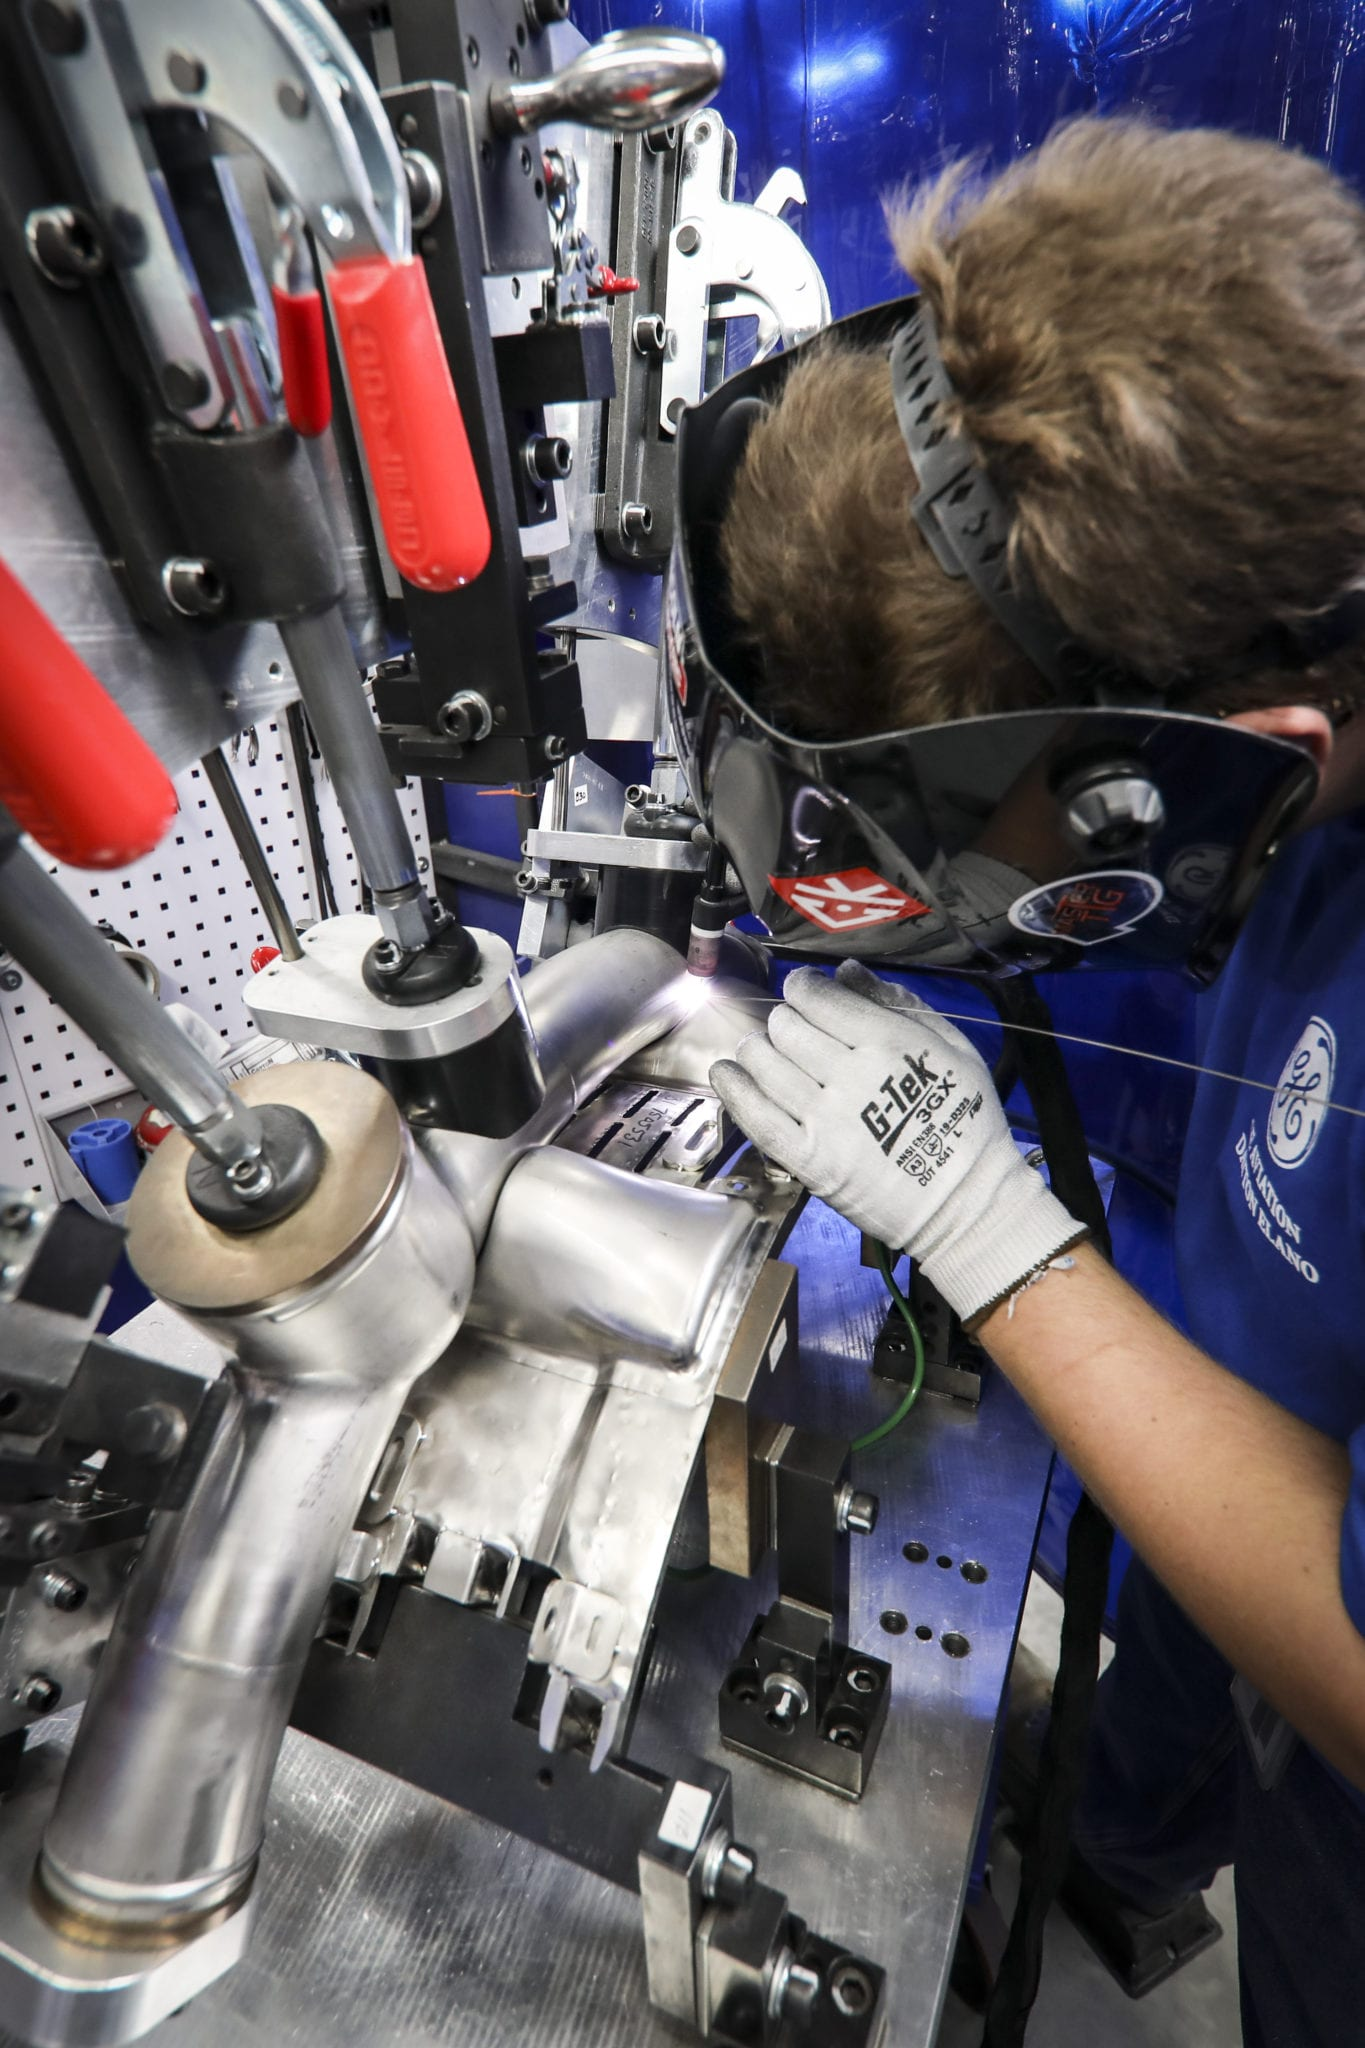 Welders Wanted: Record Commercial Engine Sales Means